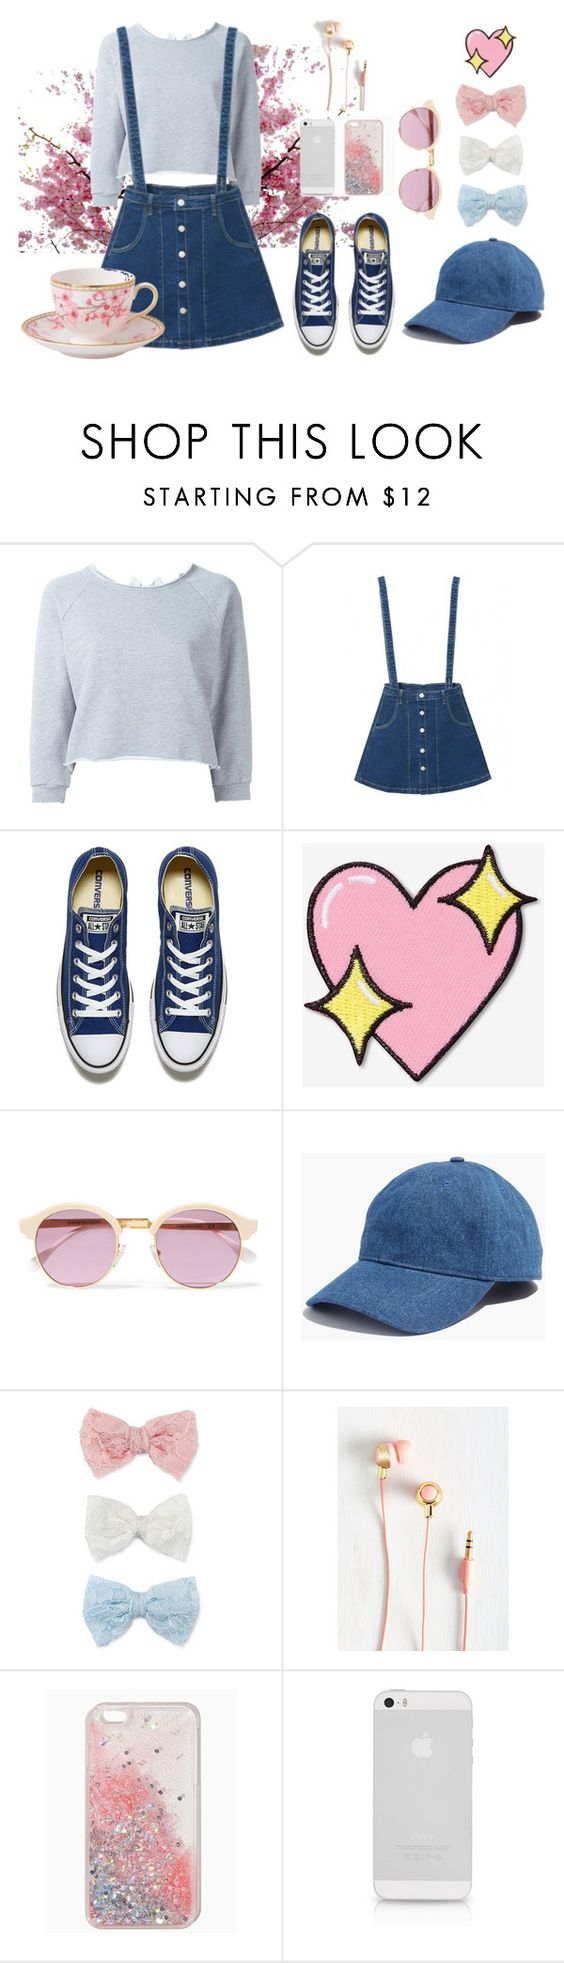 #3 by qa8700777 on Polyvore featuring мода, Gaëlle Bonheur, WithChic, Converse, Madewell, Decree, Sheriff&Cherry, Big Bud Press and Wedgwood